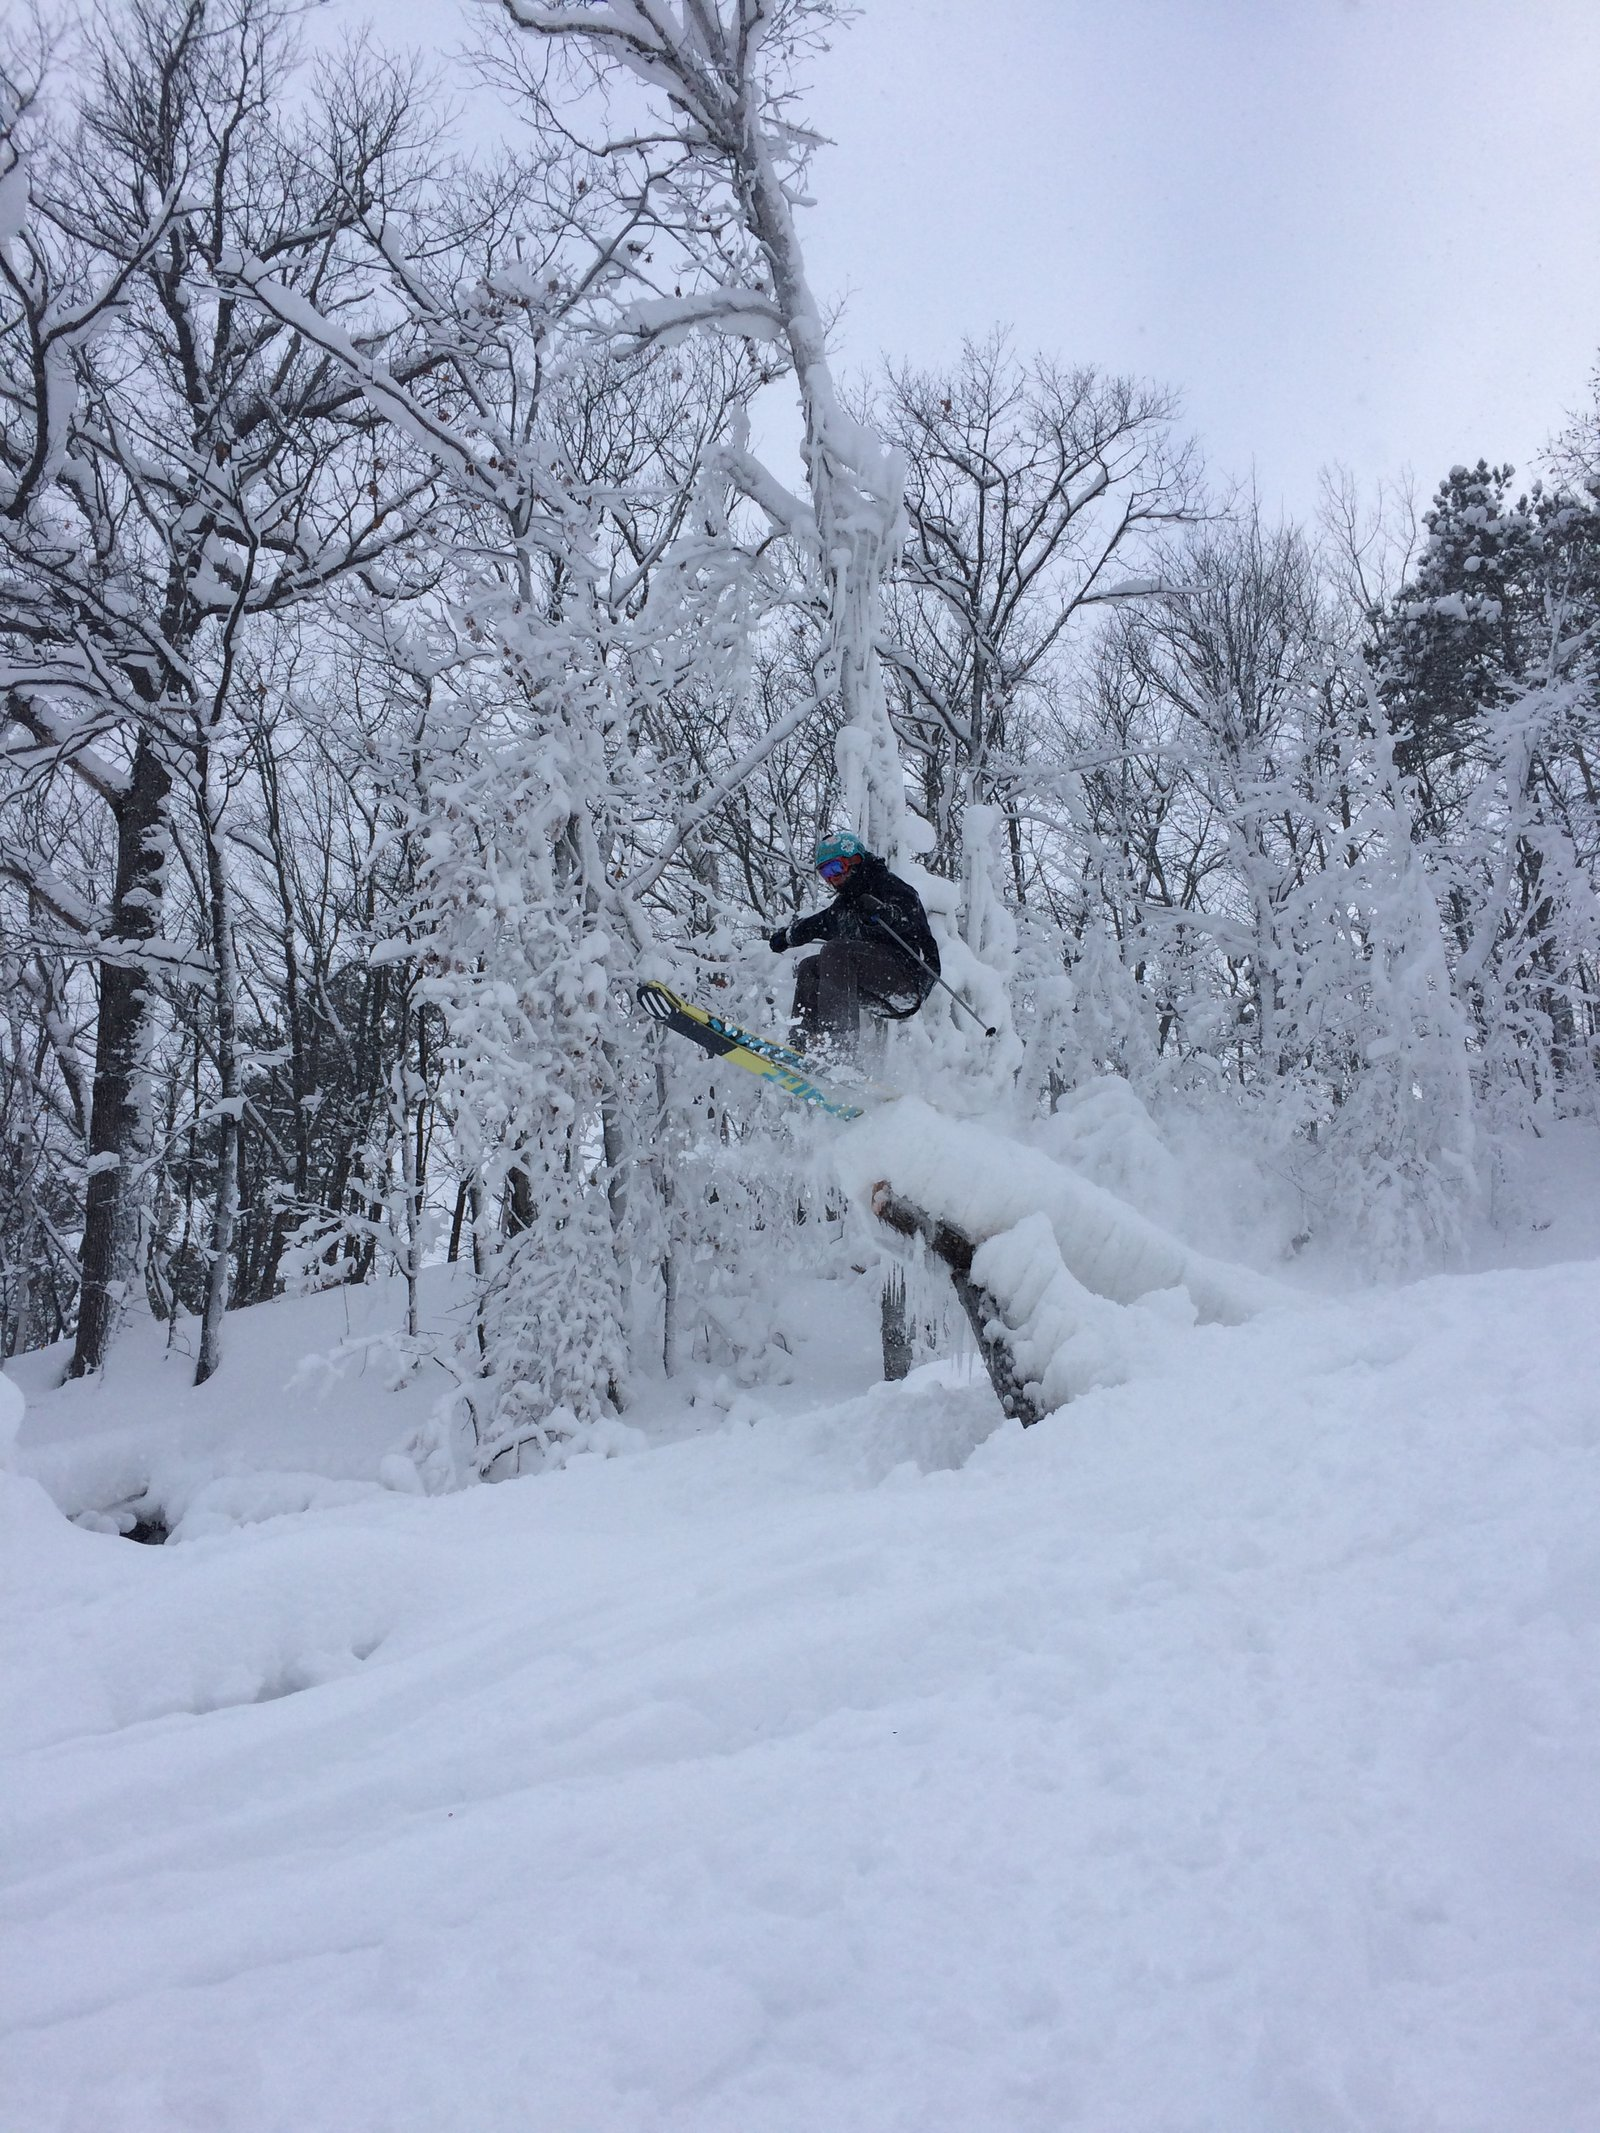 Powder Pole Jam